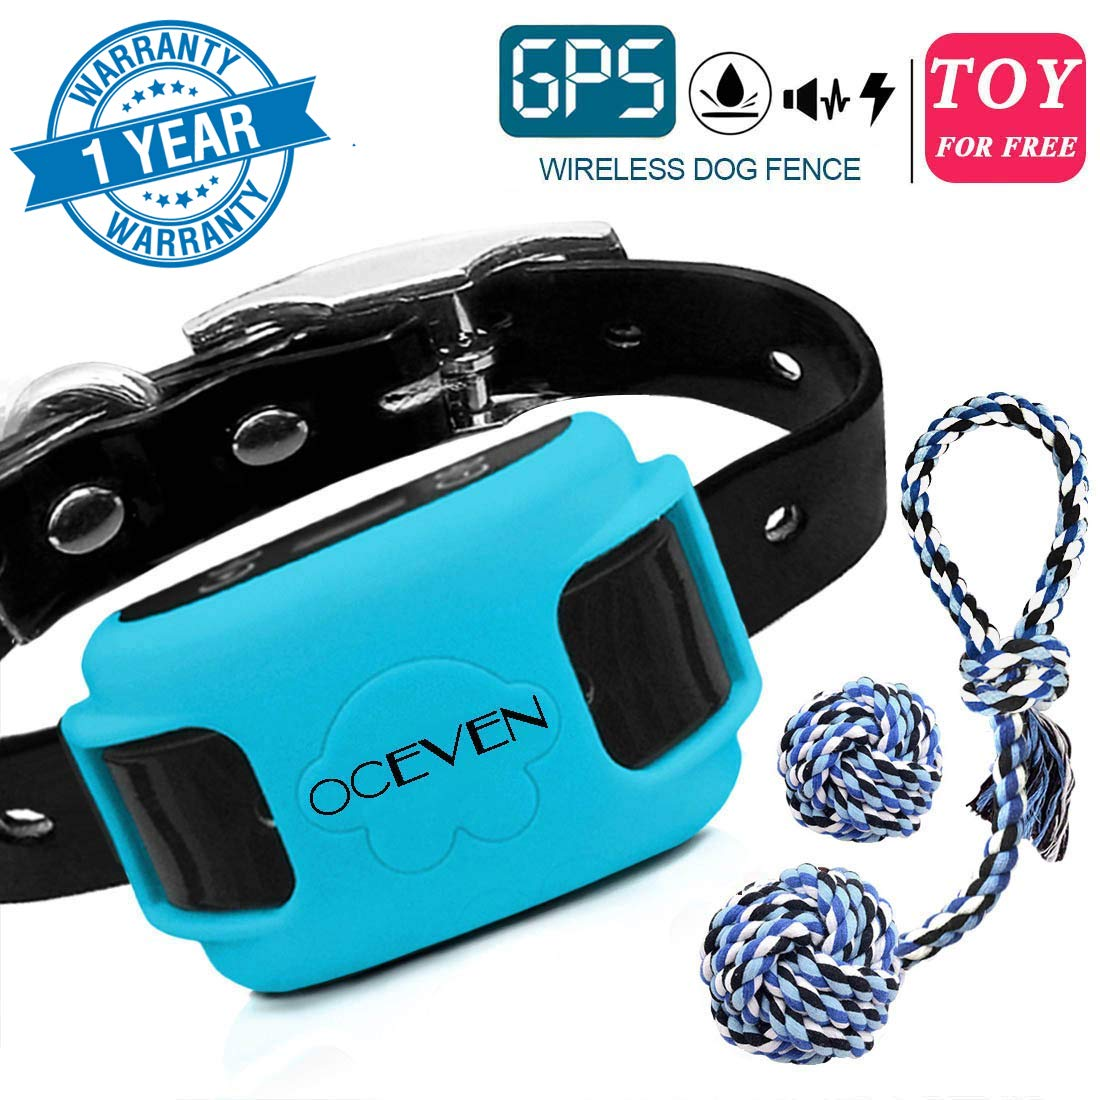 OCEVEN Wireless Dog Fence System with GPS, Outdoor Pet Containment System Rechargeable Waterproof Collar EF851S, for 15lbs-120lbs Dogs with 2pcs Toys for Free, Blue by OCEVEN